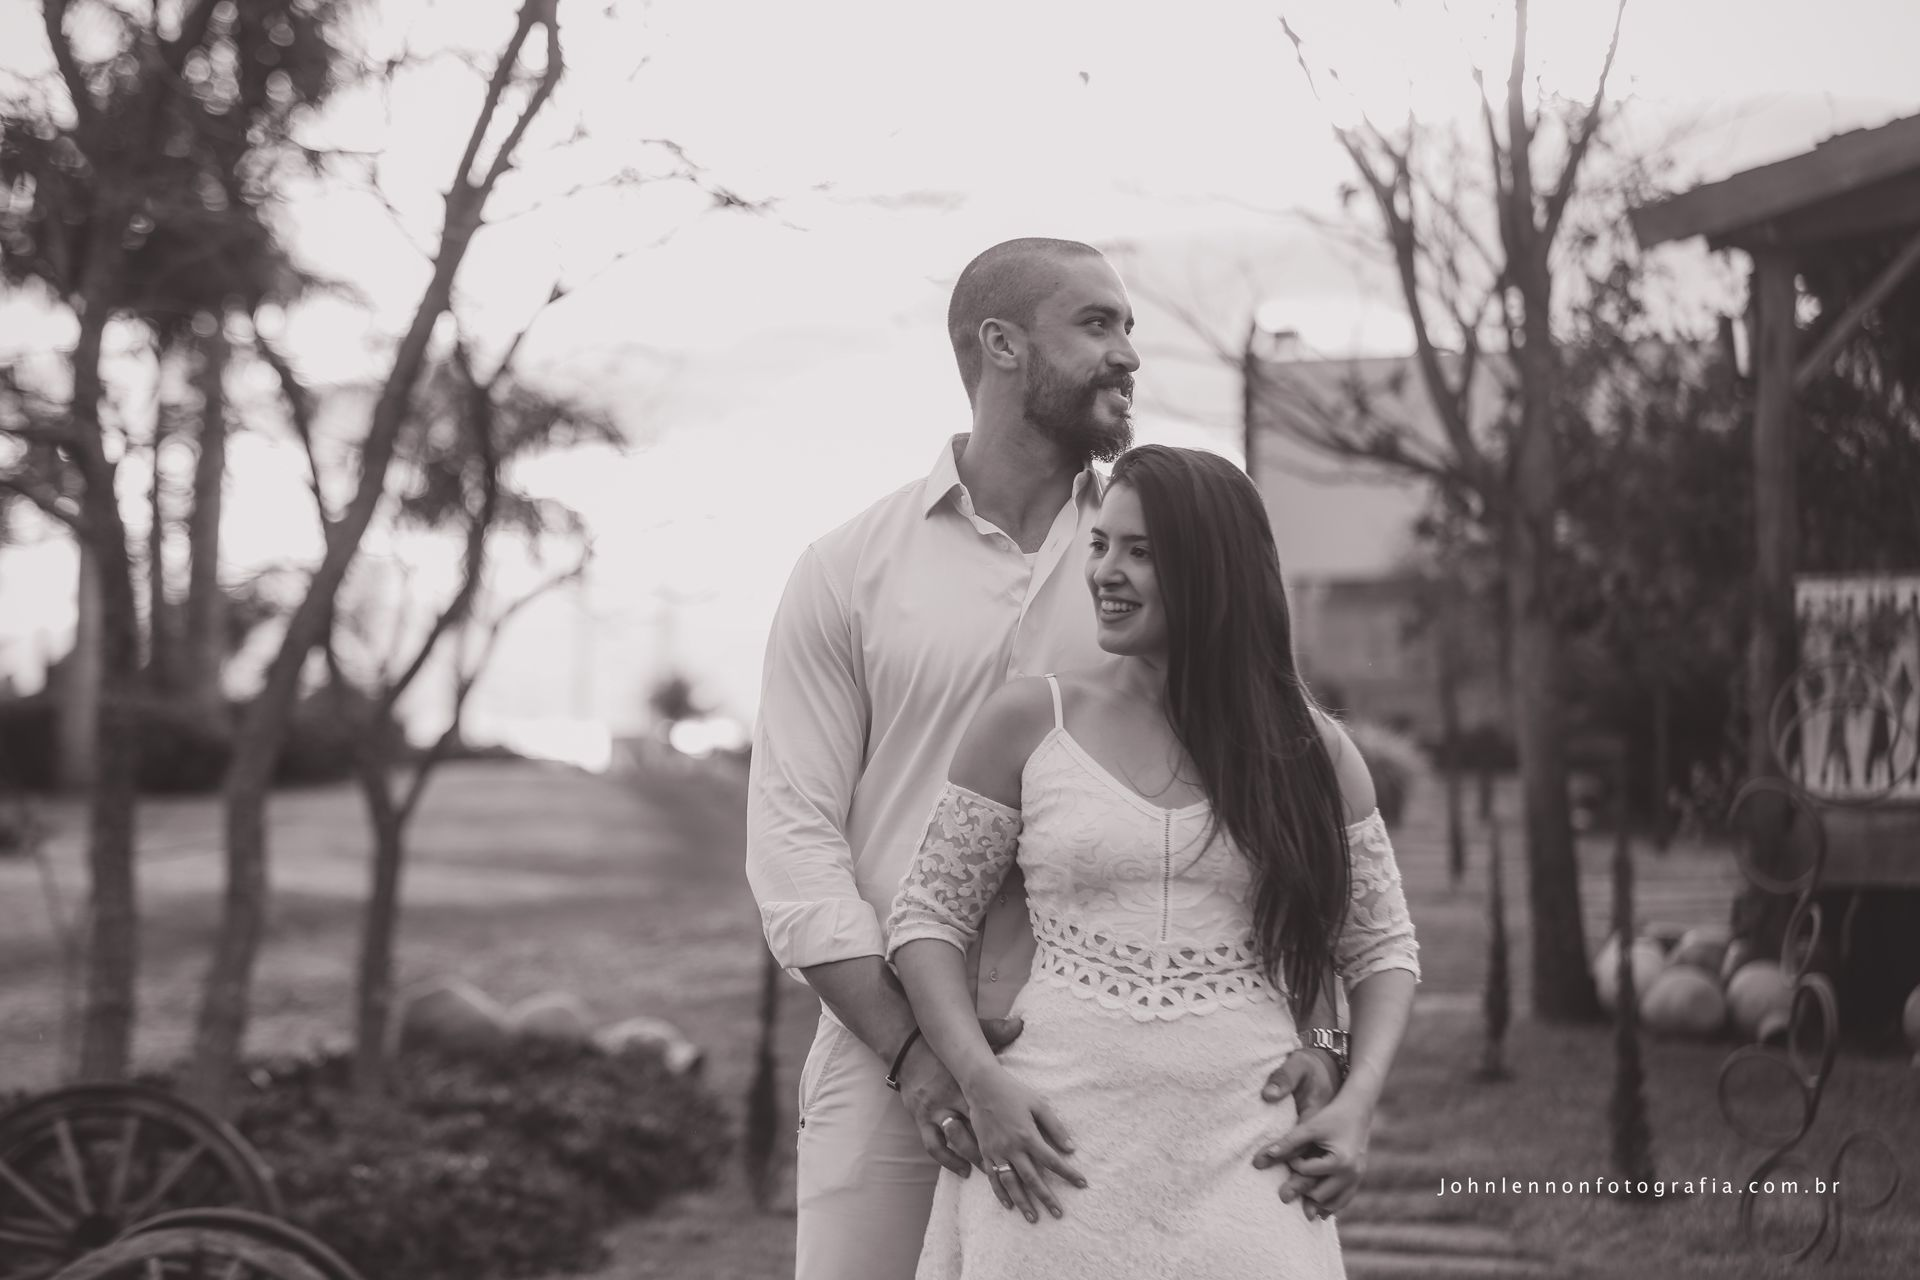 PRÉ - WEDDING TAMÍRIS E GUSTAVO - BÁLSAMO - SP - 06.07.2017